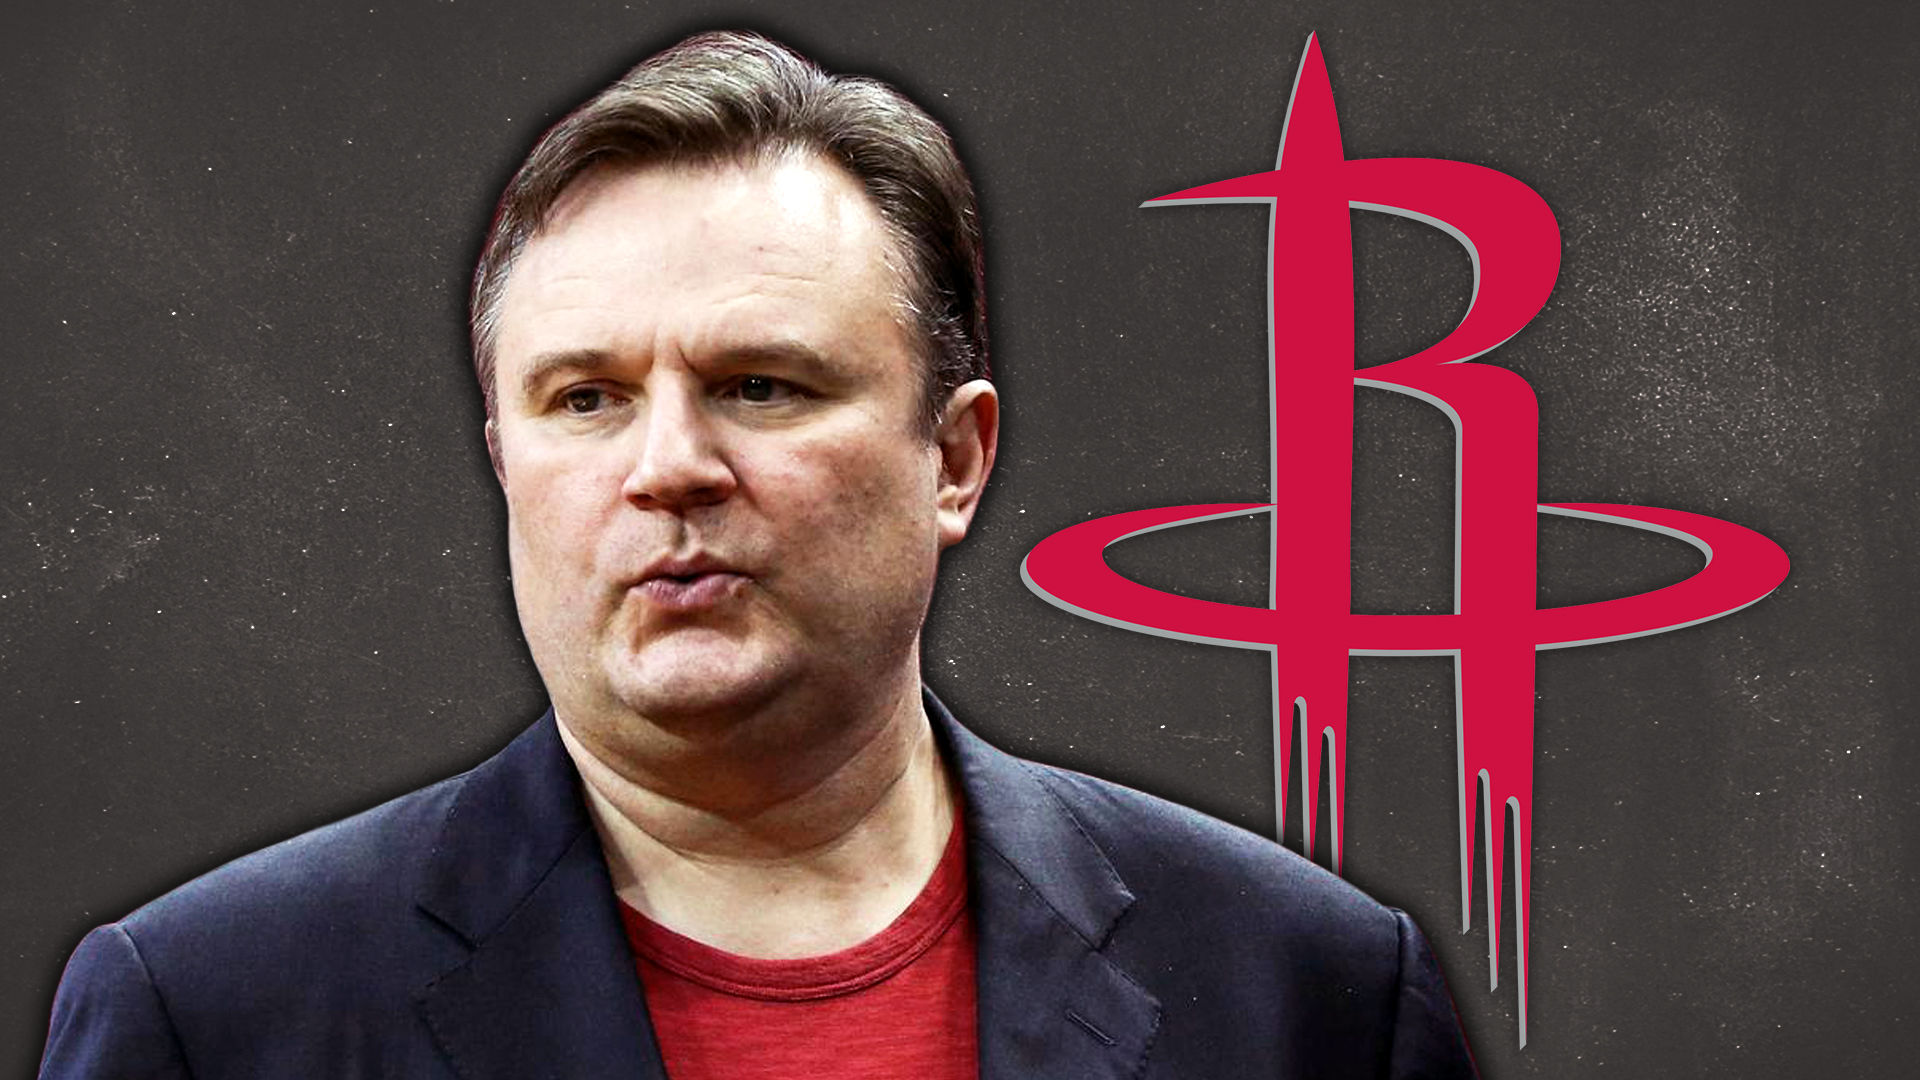 Houston Rockets Gm S Pro Hong Kong Tweet Sparks Controversy